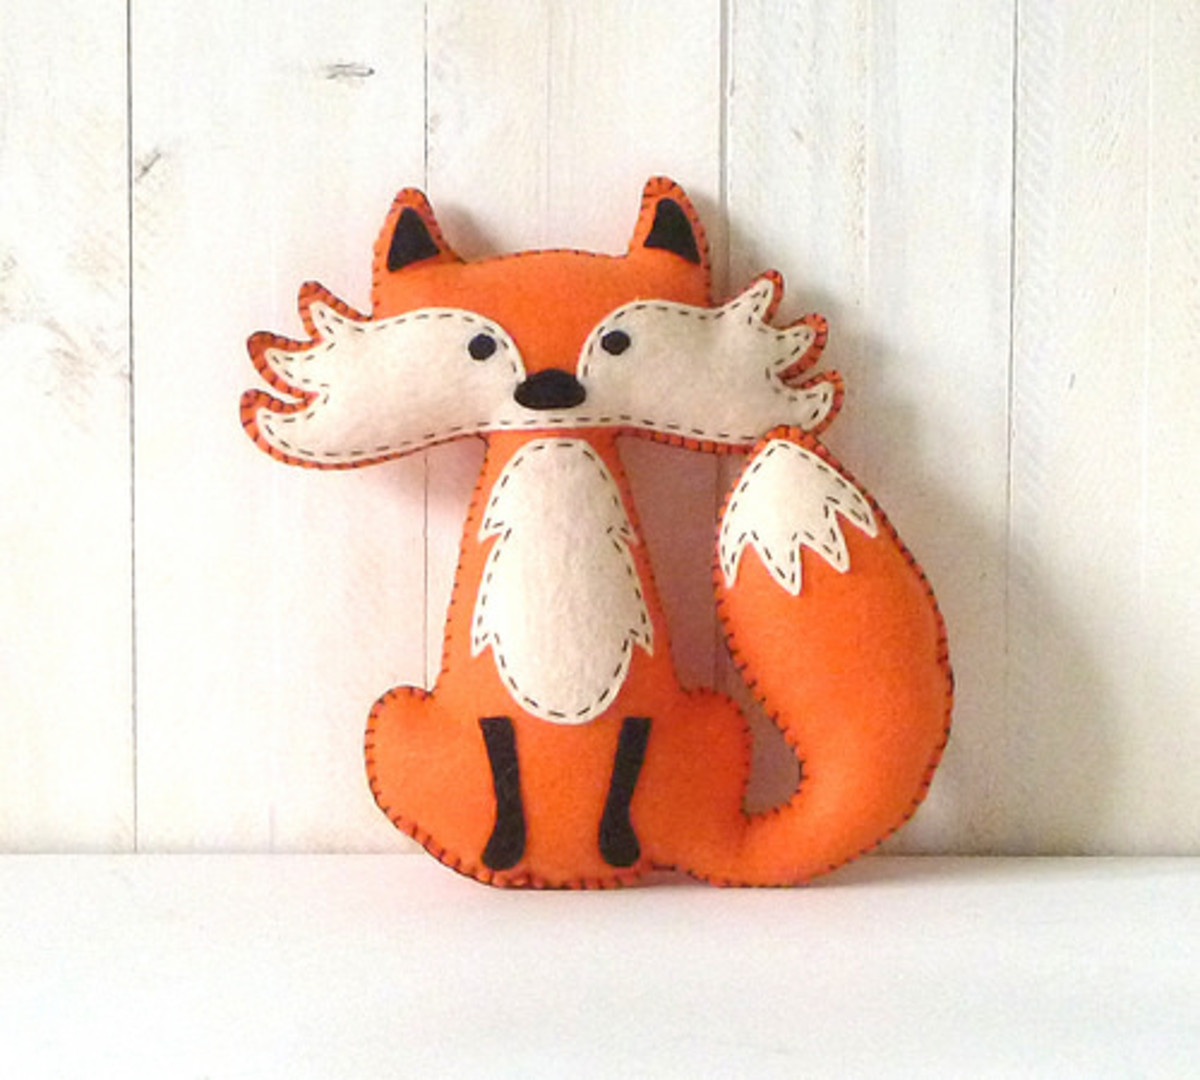 Not my fox. This one is finished infinitely better than mine was.